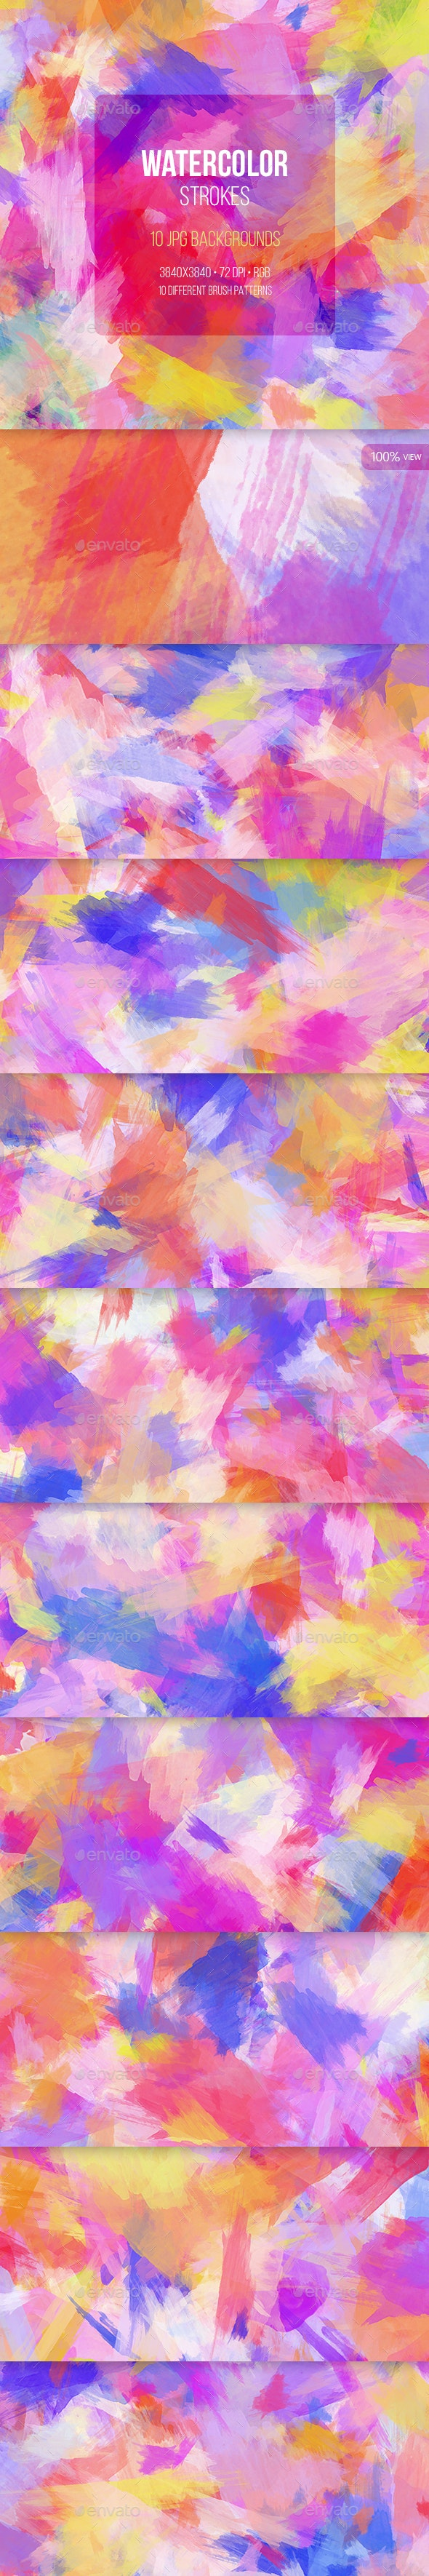 Watercolor Strokes - Backgrounds Graphics